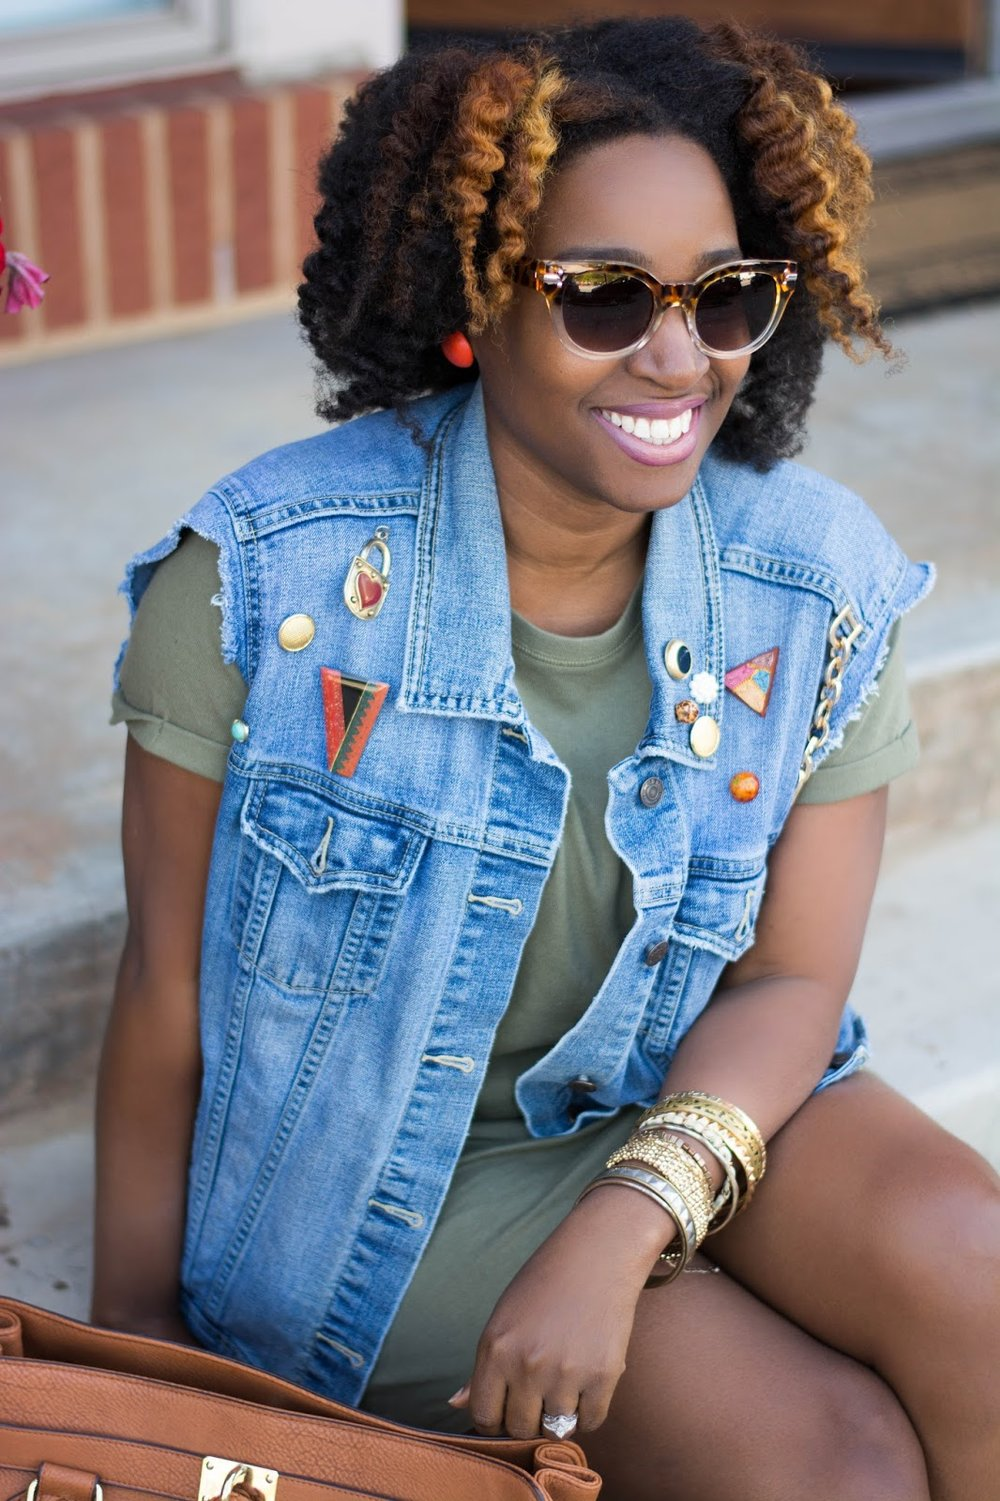 Atlanta stylist, Atlanta blogger, Style blogger, Black blogger, Black girls killing it, Black girls rock, Forever21, Booties, Handbag, T-Shirt dress, Denim vest, Diy street fashion, Brown girls, Natural Hair, Shoedazzle, Olive shirt dress, Summerwear, Springwear